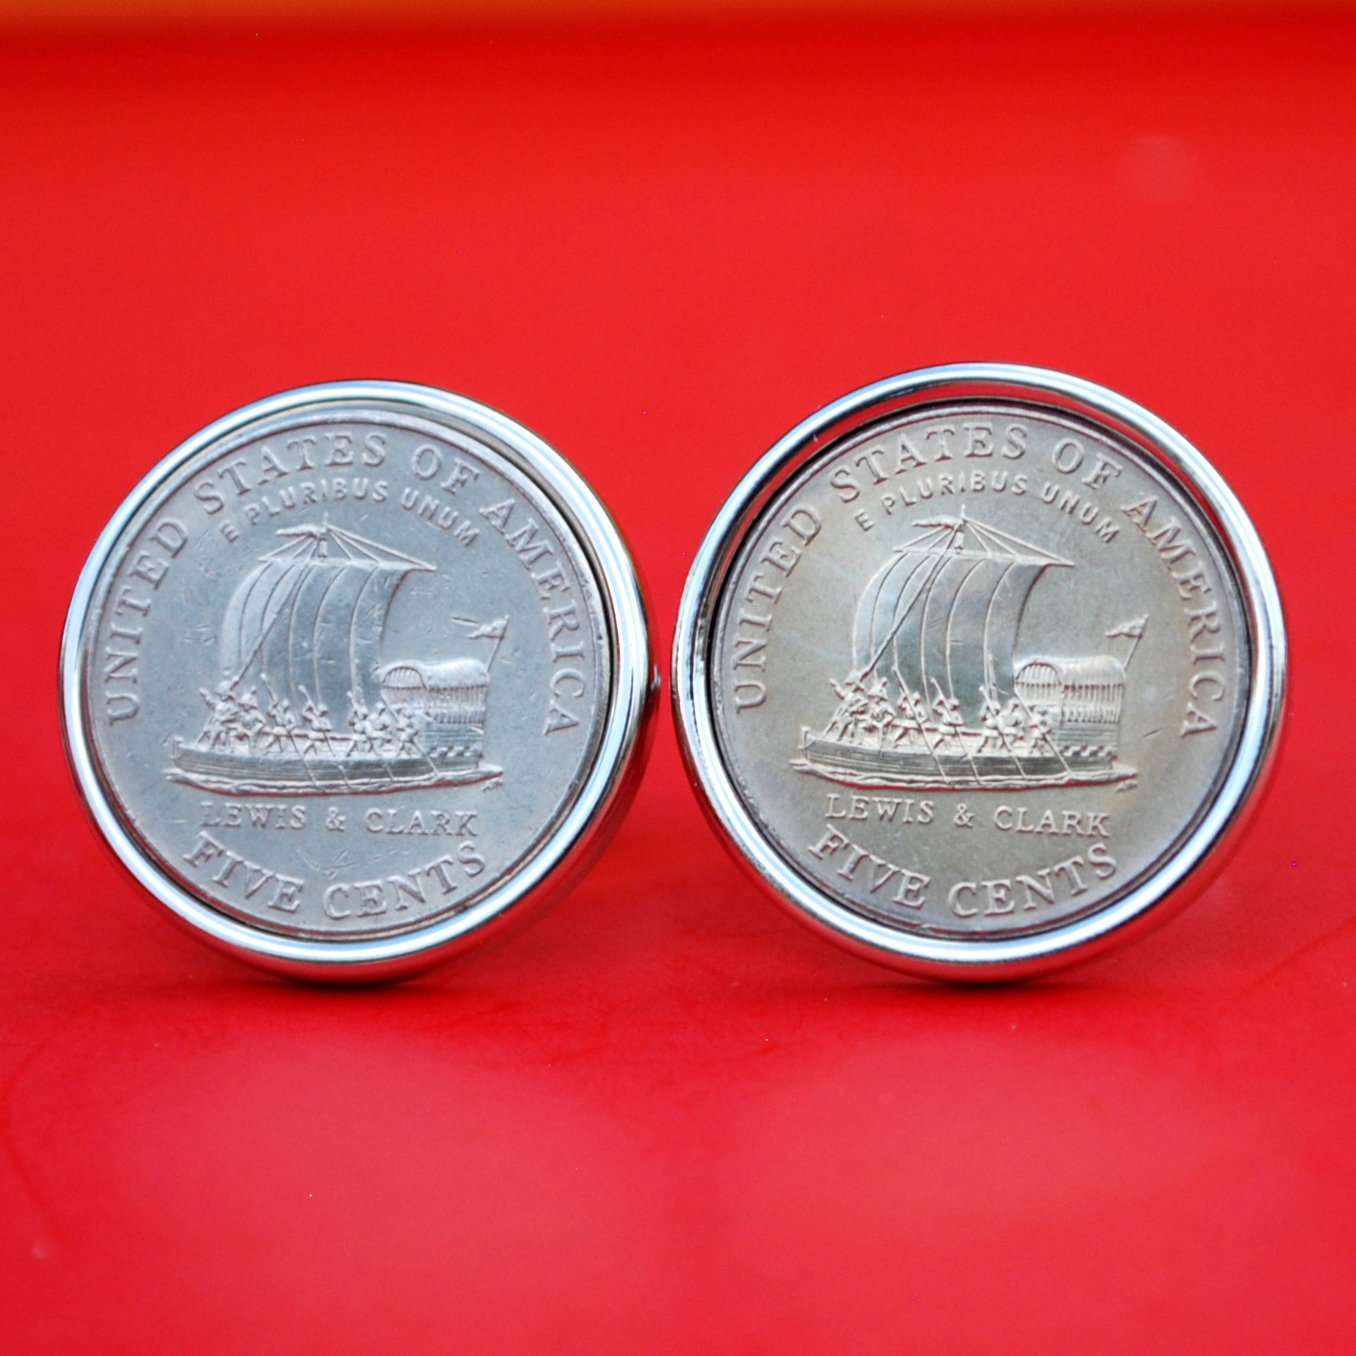 Sale item A Pair of Spasm price US 2004 Jefferson Nickel BU Coin 5 Cent Uncirculated S